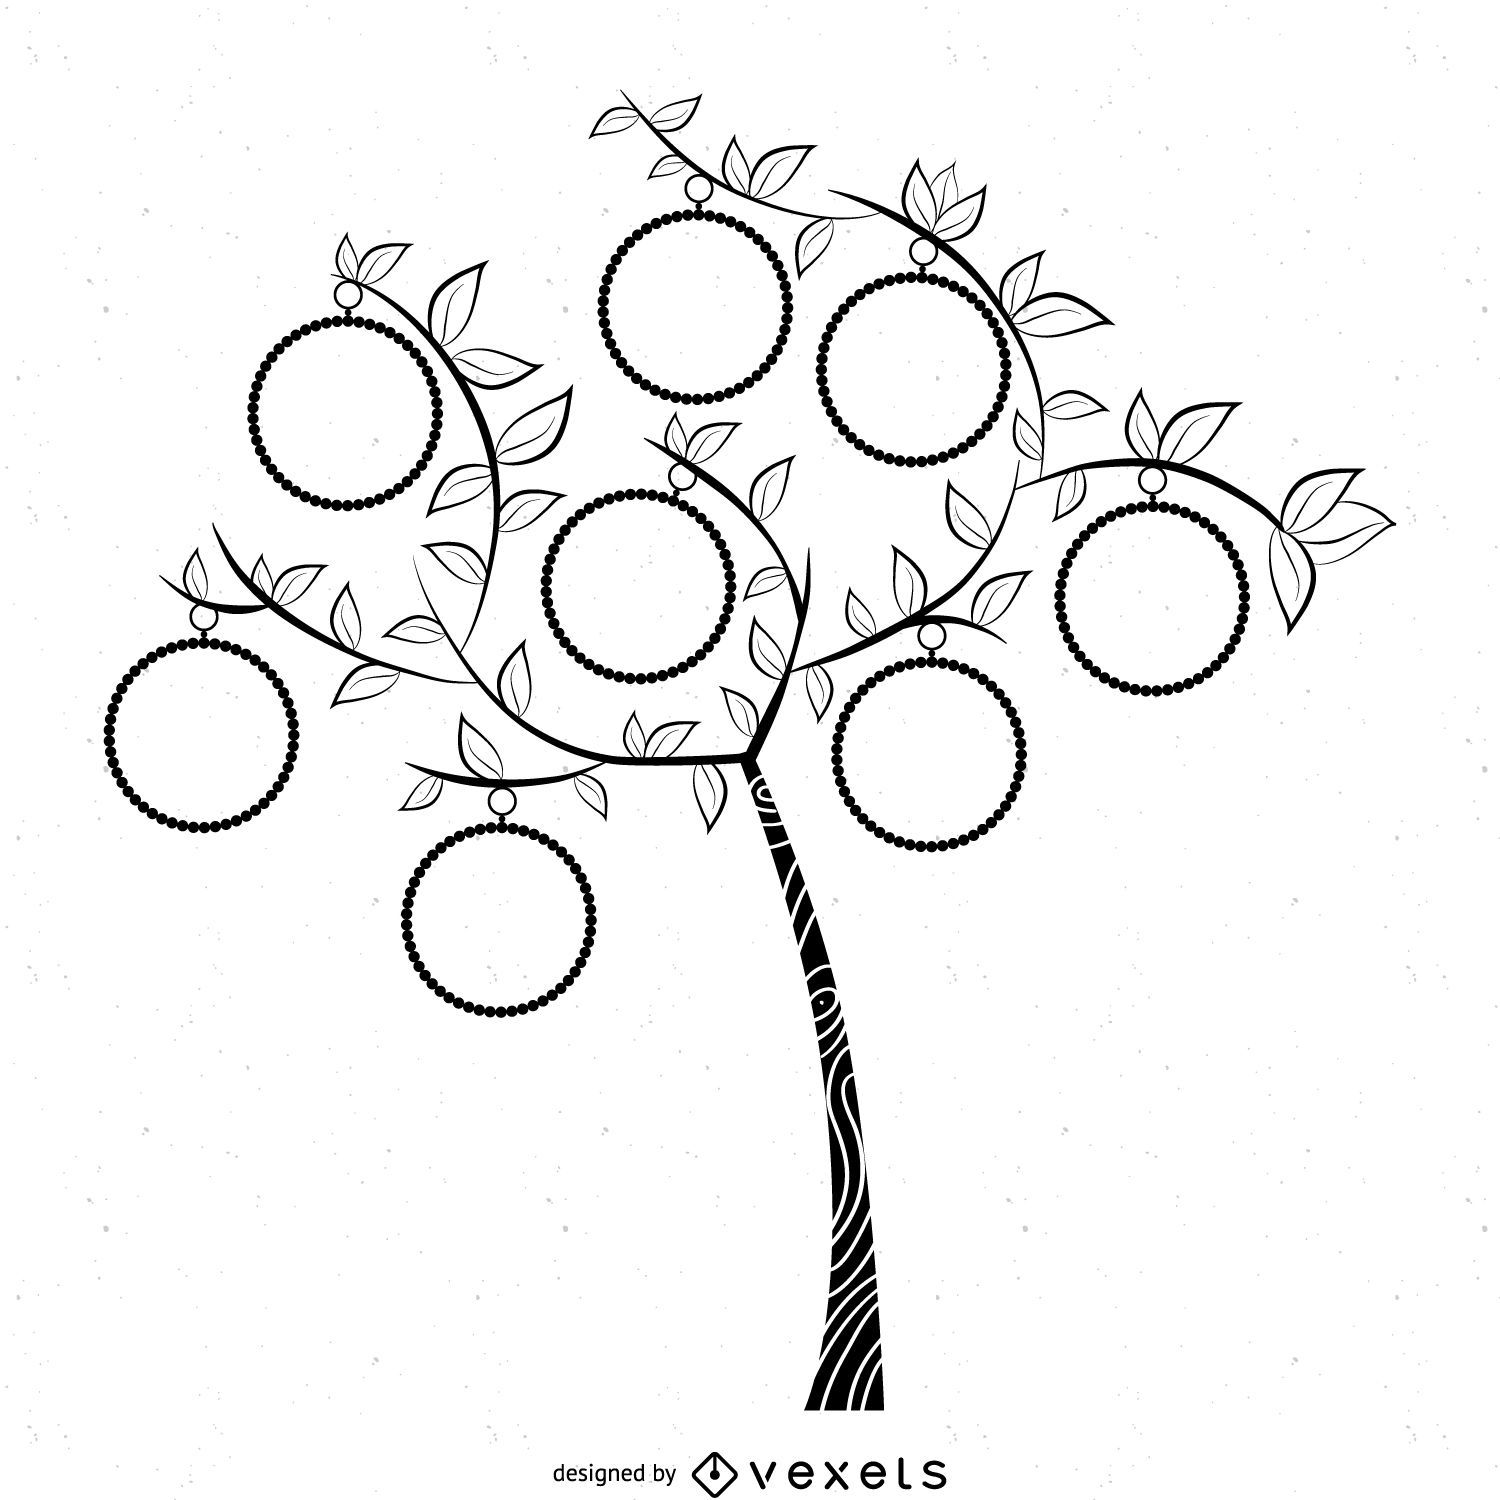 Simple bw family tree template vector download simple bw family tree template download large image 1600x1600px saigontimesfo